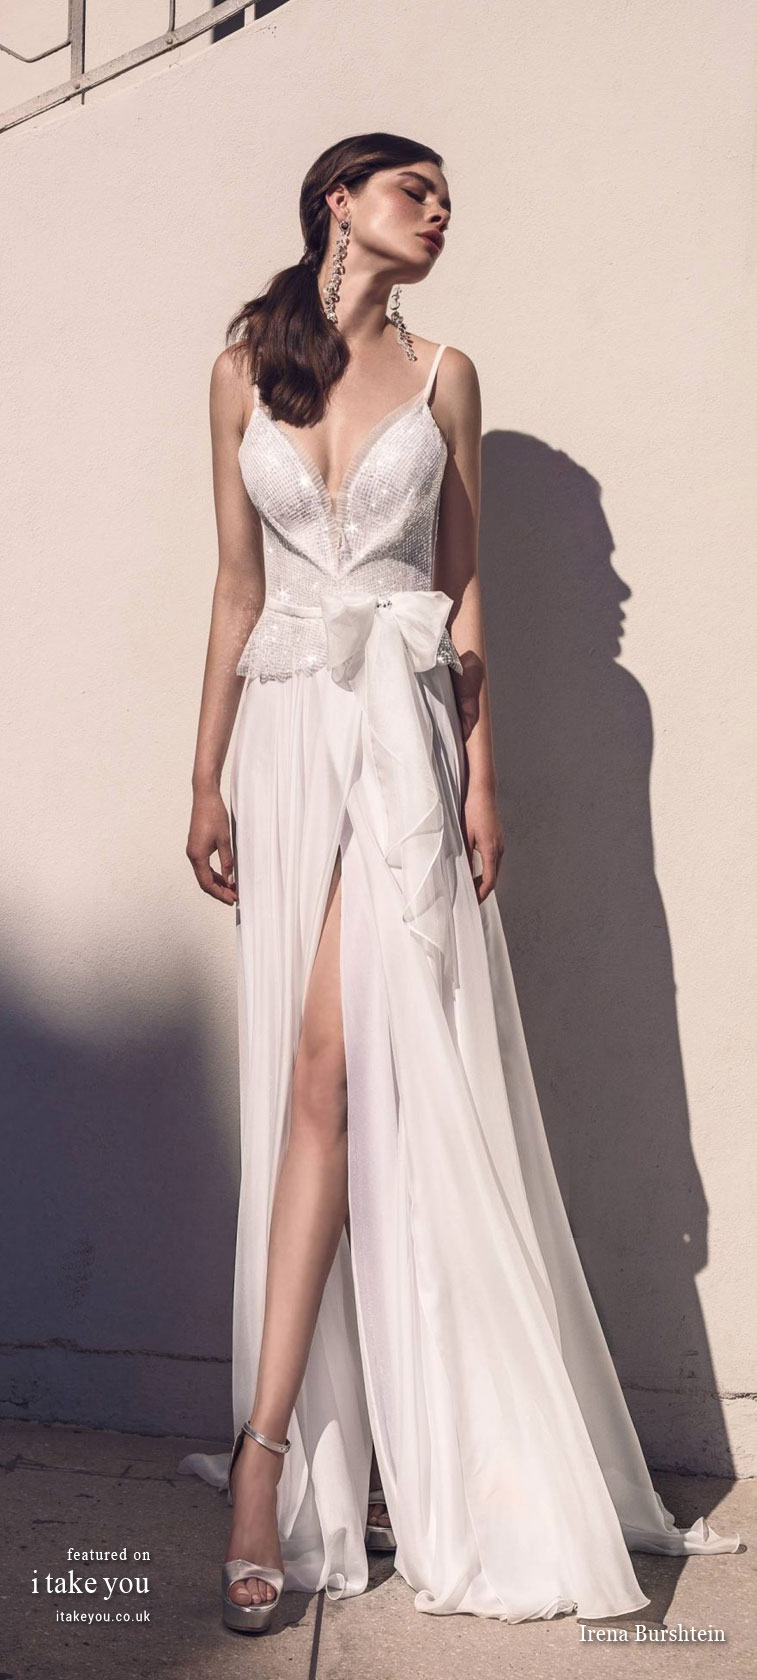 Irena Burshtein Wedding Dresses – Moloko Bridal Collection 2020